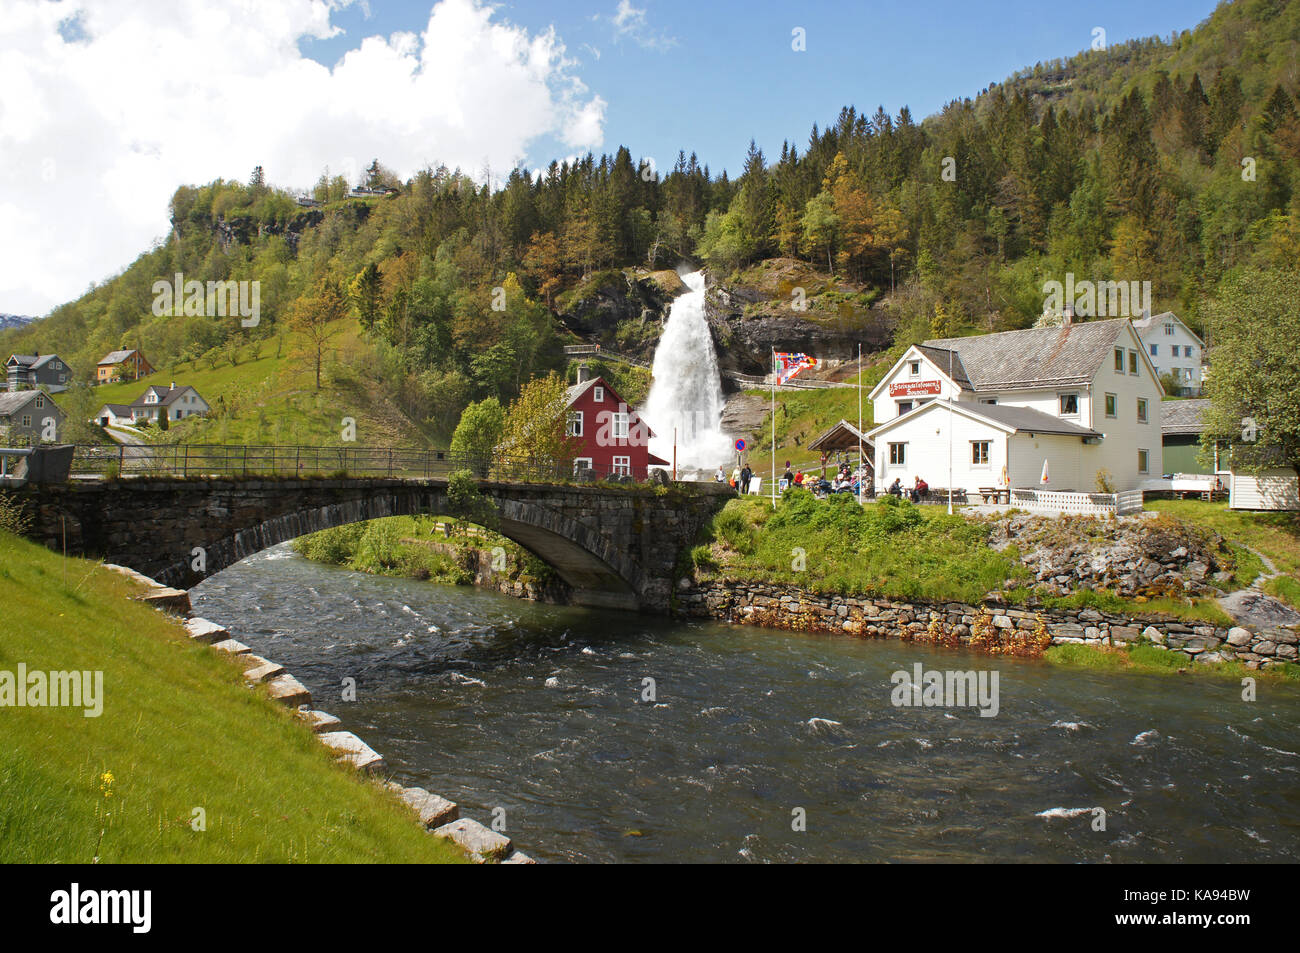 Steinsdalsfossen waterfall in the river of Steine, scenic landscape with cascade surounded by mountains and traditional - Stock Image